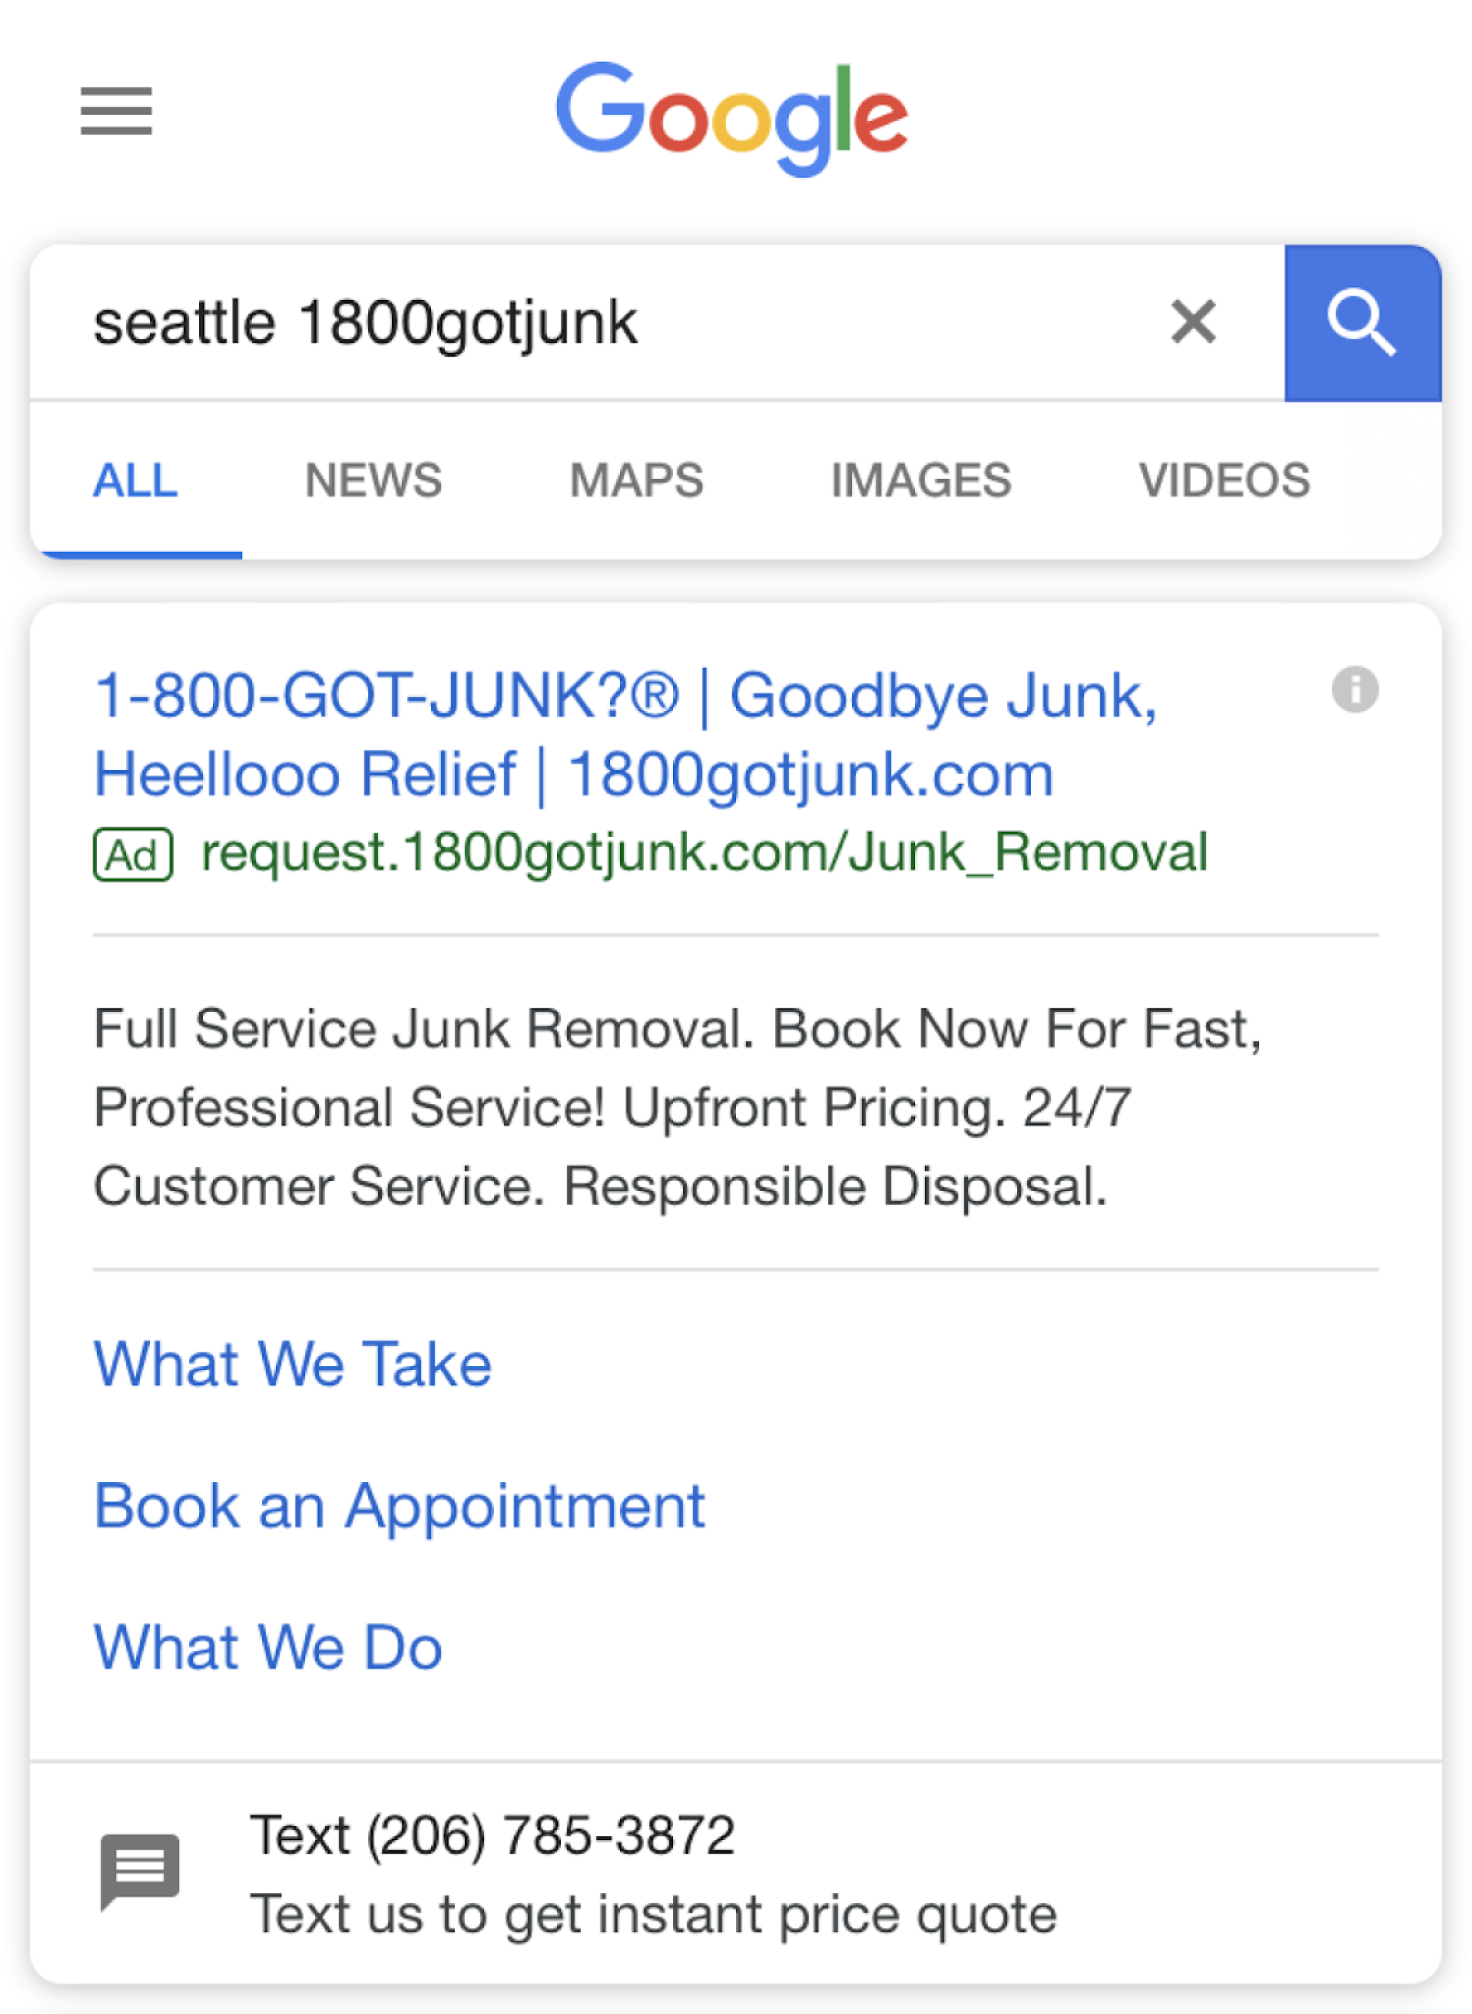 Using a business text message in a Google ad